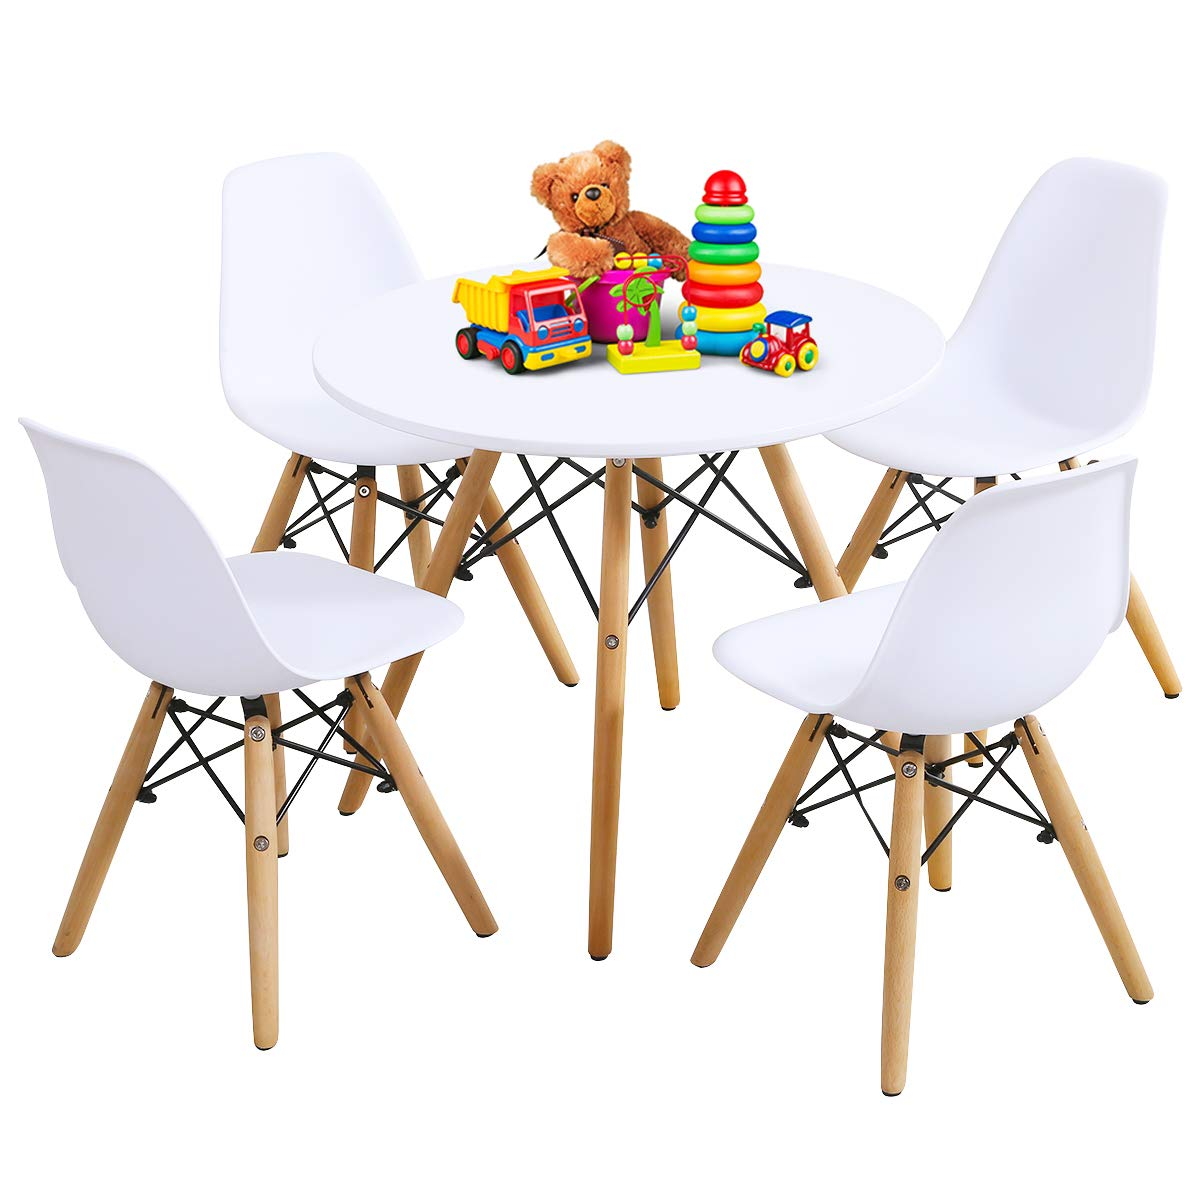 Costzon Kids Table and Chair Set, Kids Mid-Century Modern Style Table Set for Toddler Children, Kids Dining Table and Chair Set, 5-Piece Set (White, Table & 4 Chairs)